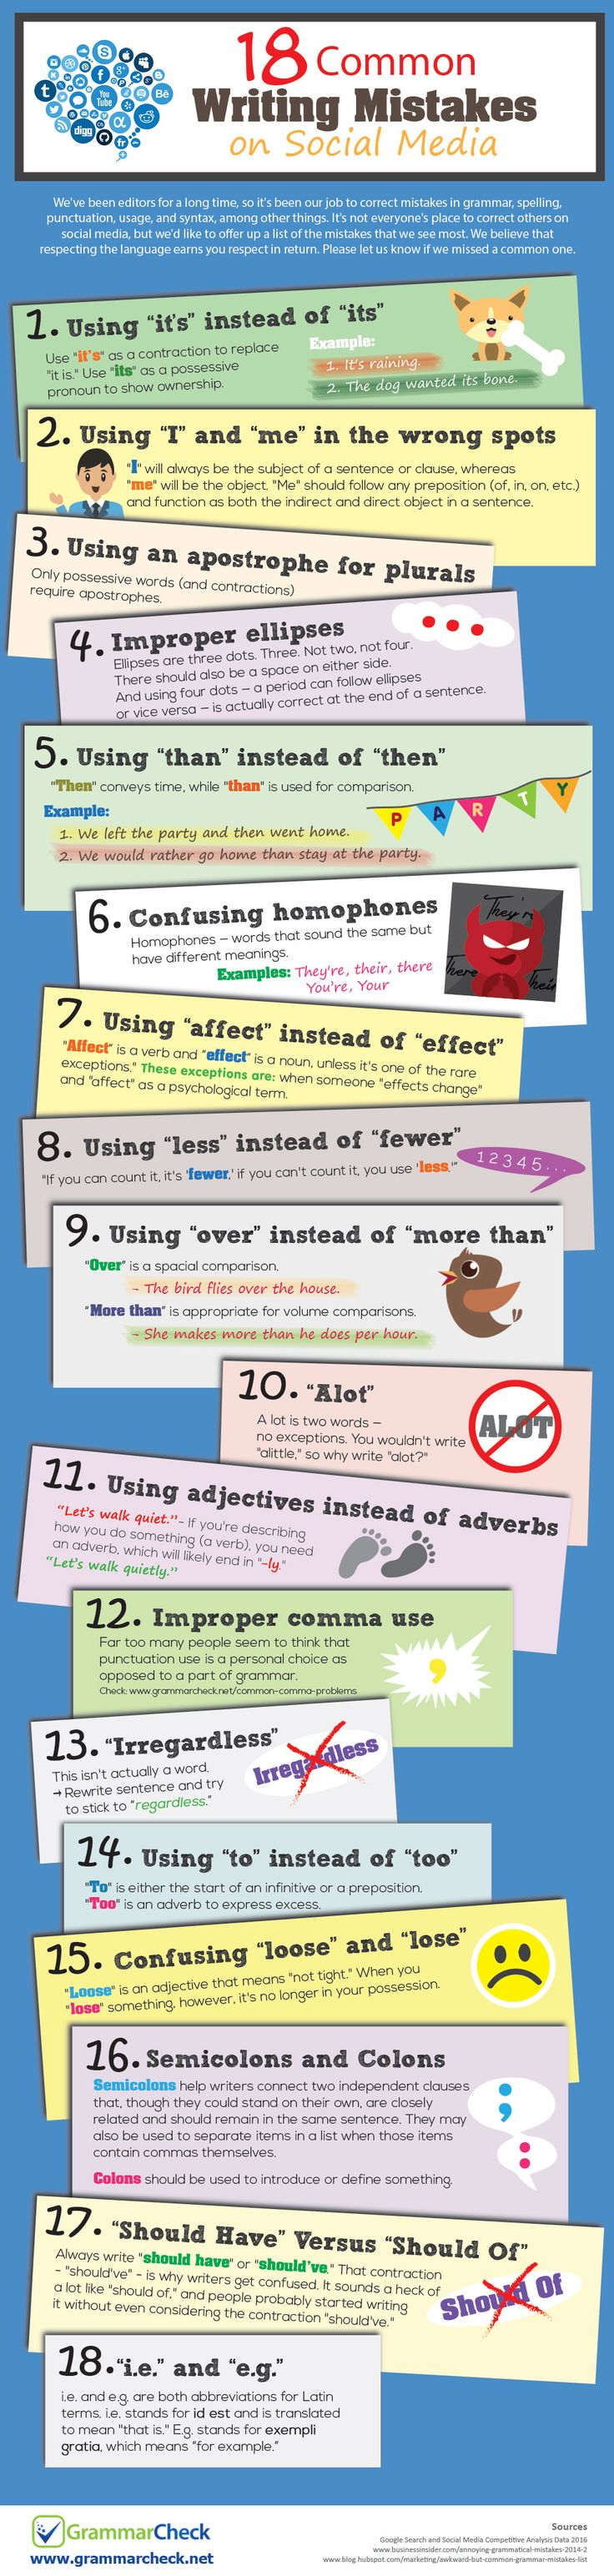 18 Common Writing Mistakes on Social Media